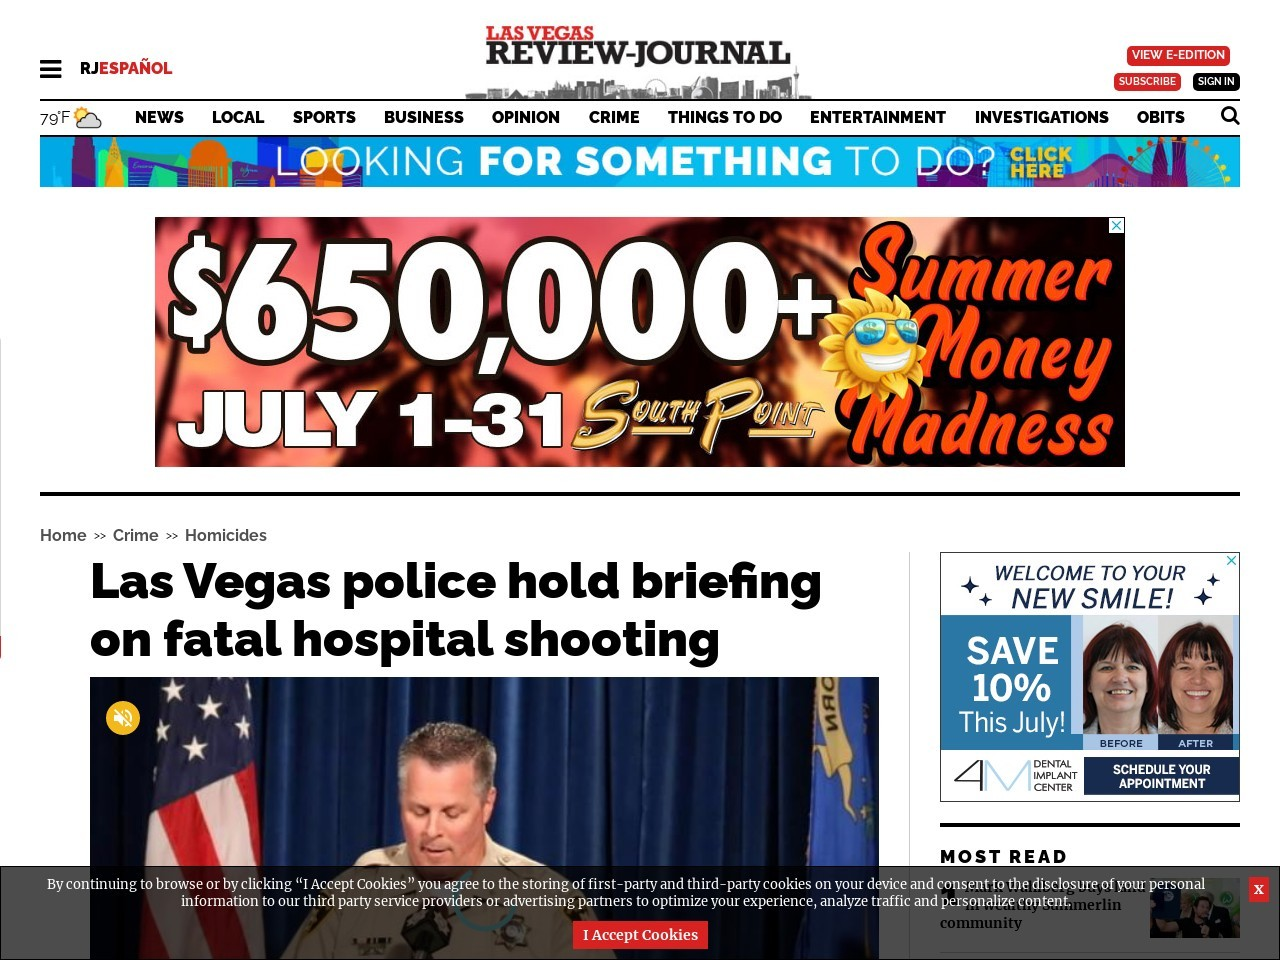 Las Vegas police to hold briefing on fatal hospital shooting